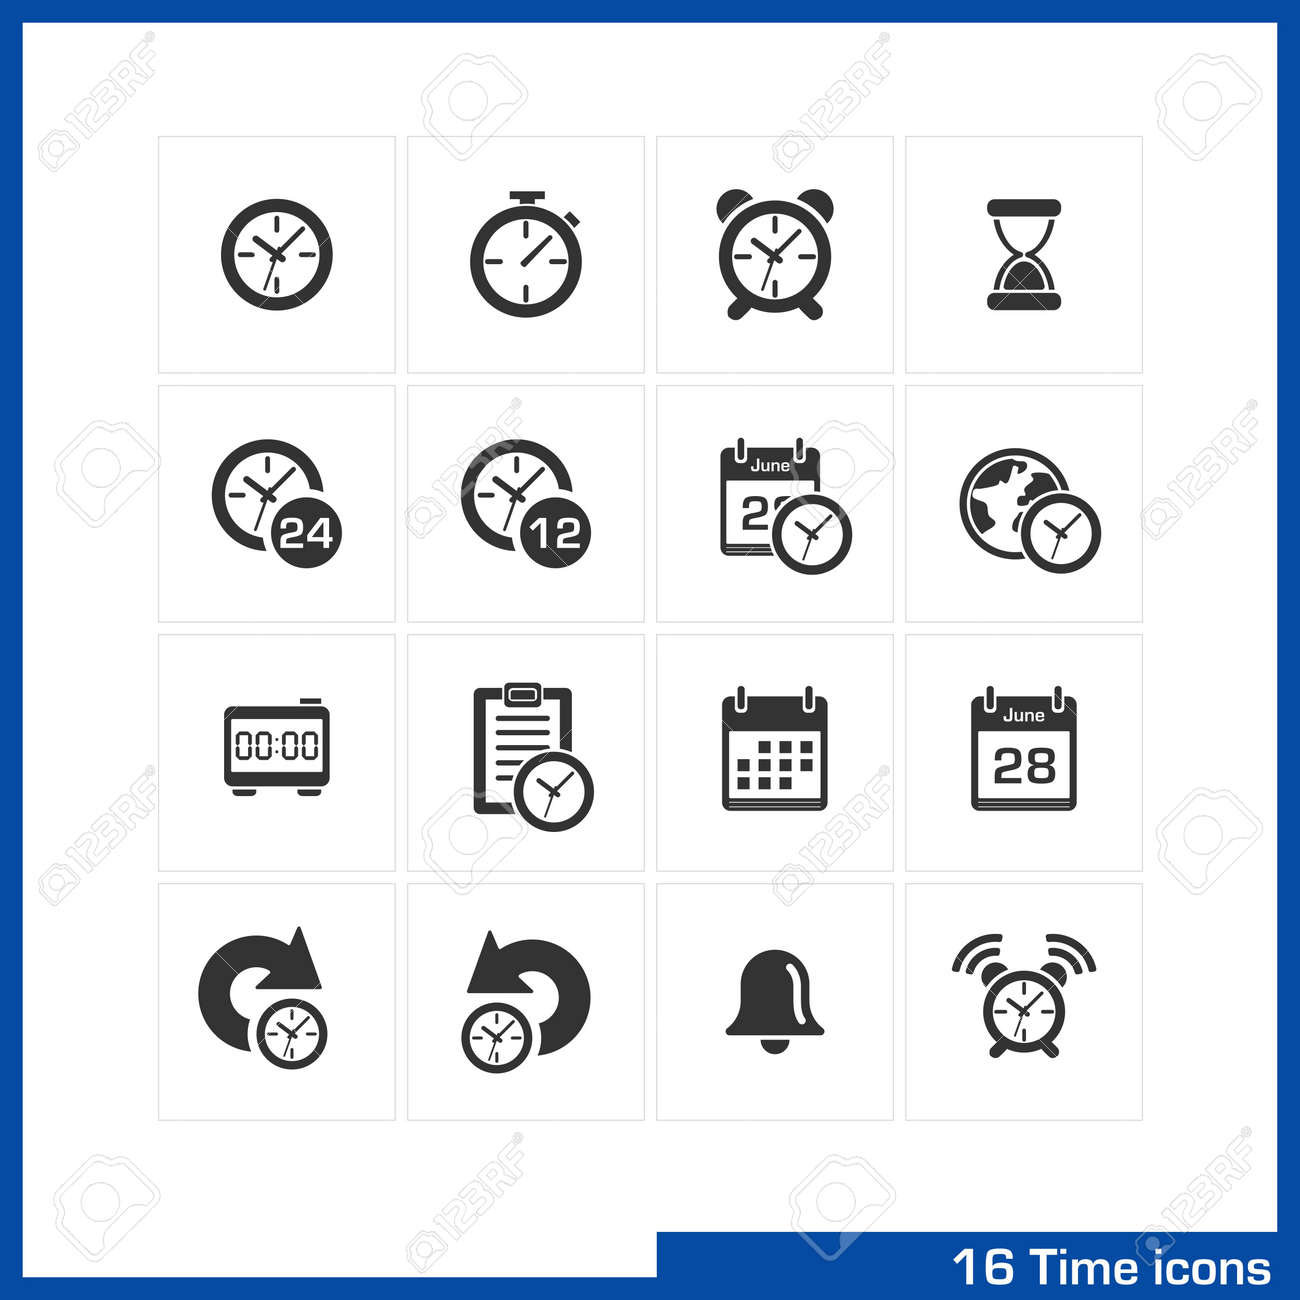 Date and time icons set vector black pictograms for business date and time icons set vector black pictograms for business management web internet biocorpaavc